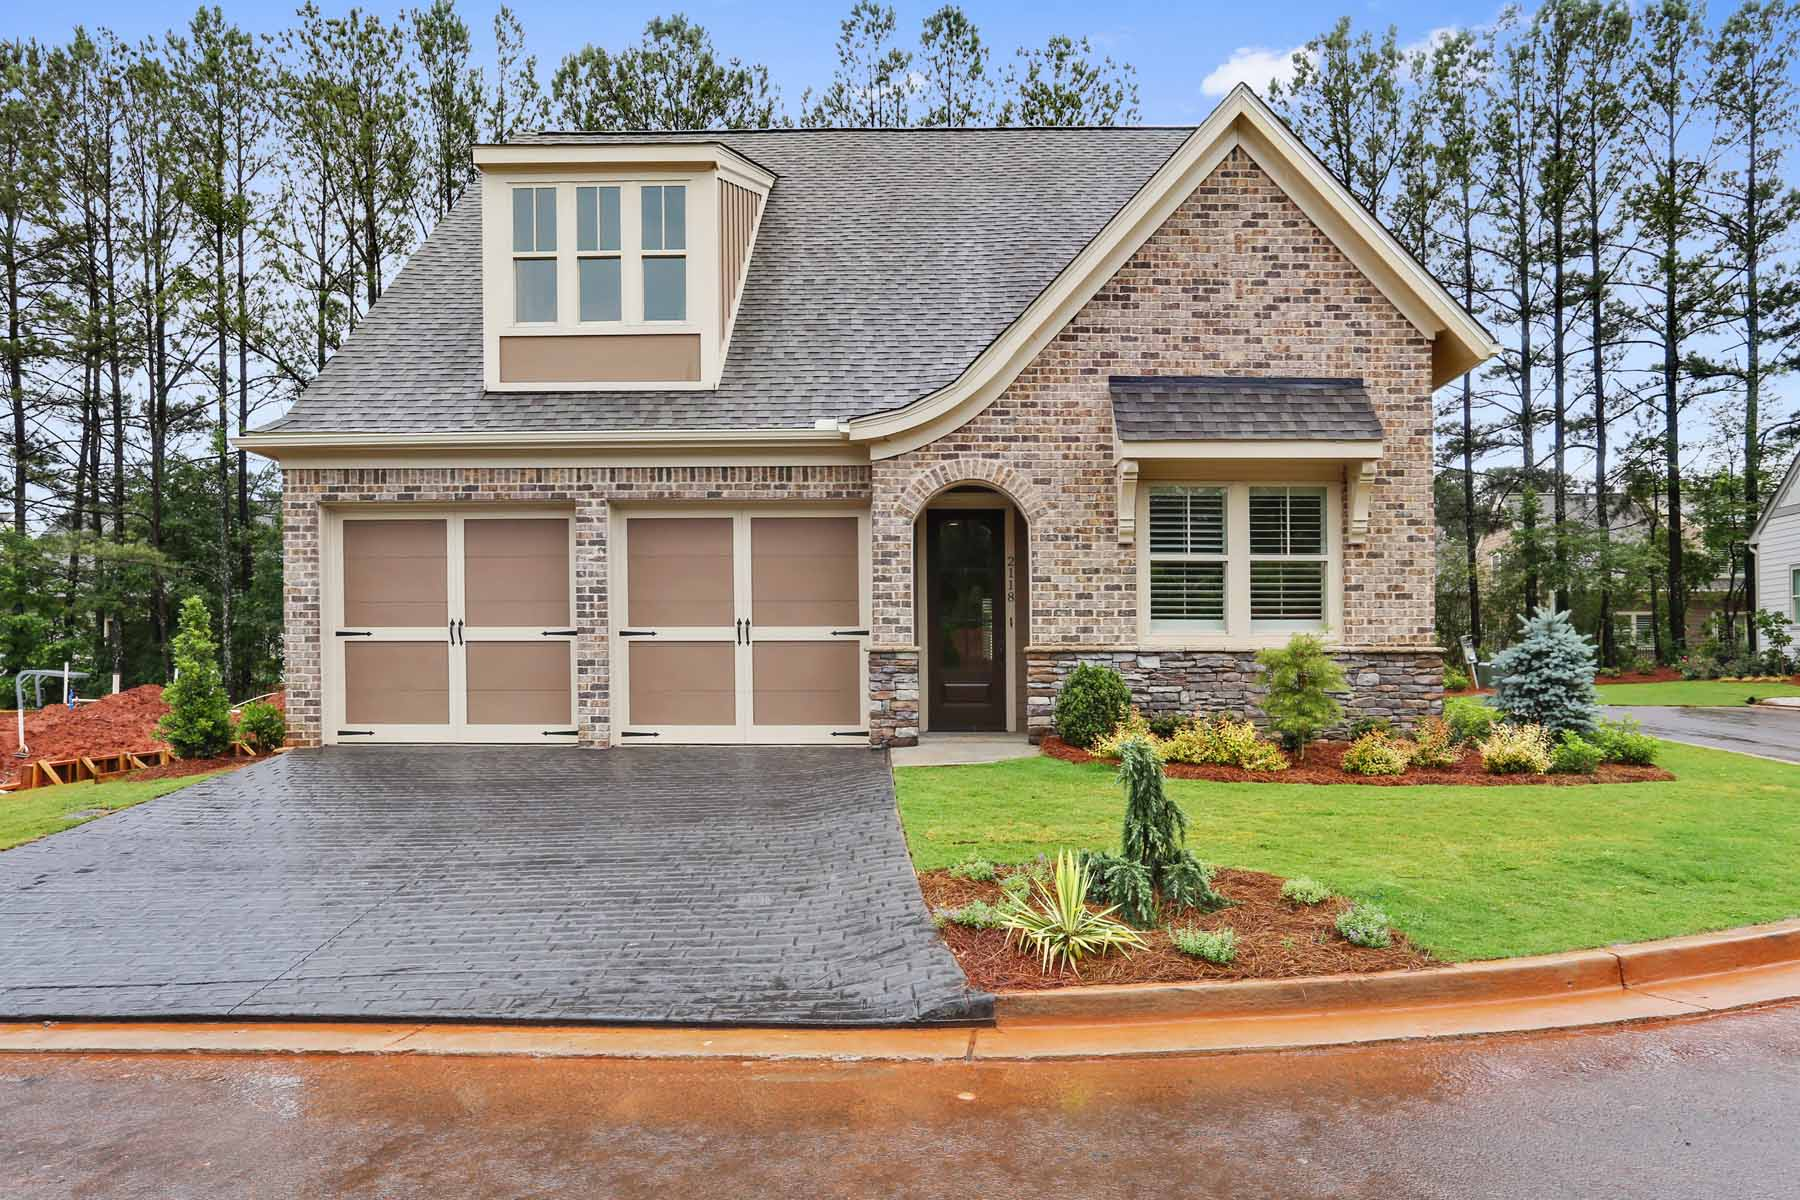 Casa Unifamiliar por un Venta en Enjoy Luxury Maintenance Free Living 309 Little Pine Lane Woodstock, Georgia, 30188 Estados Unidos